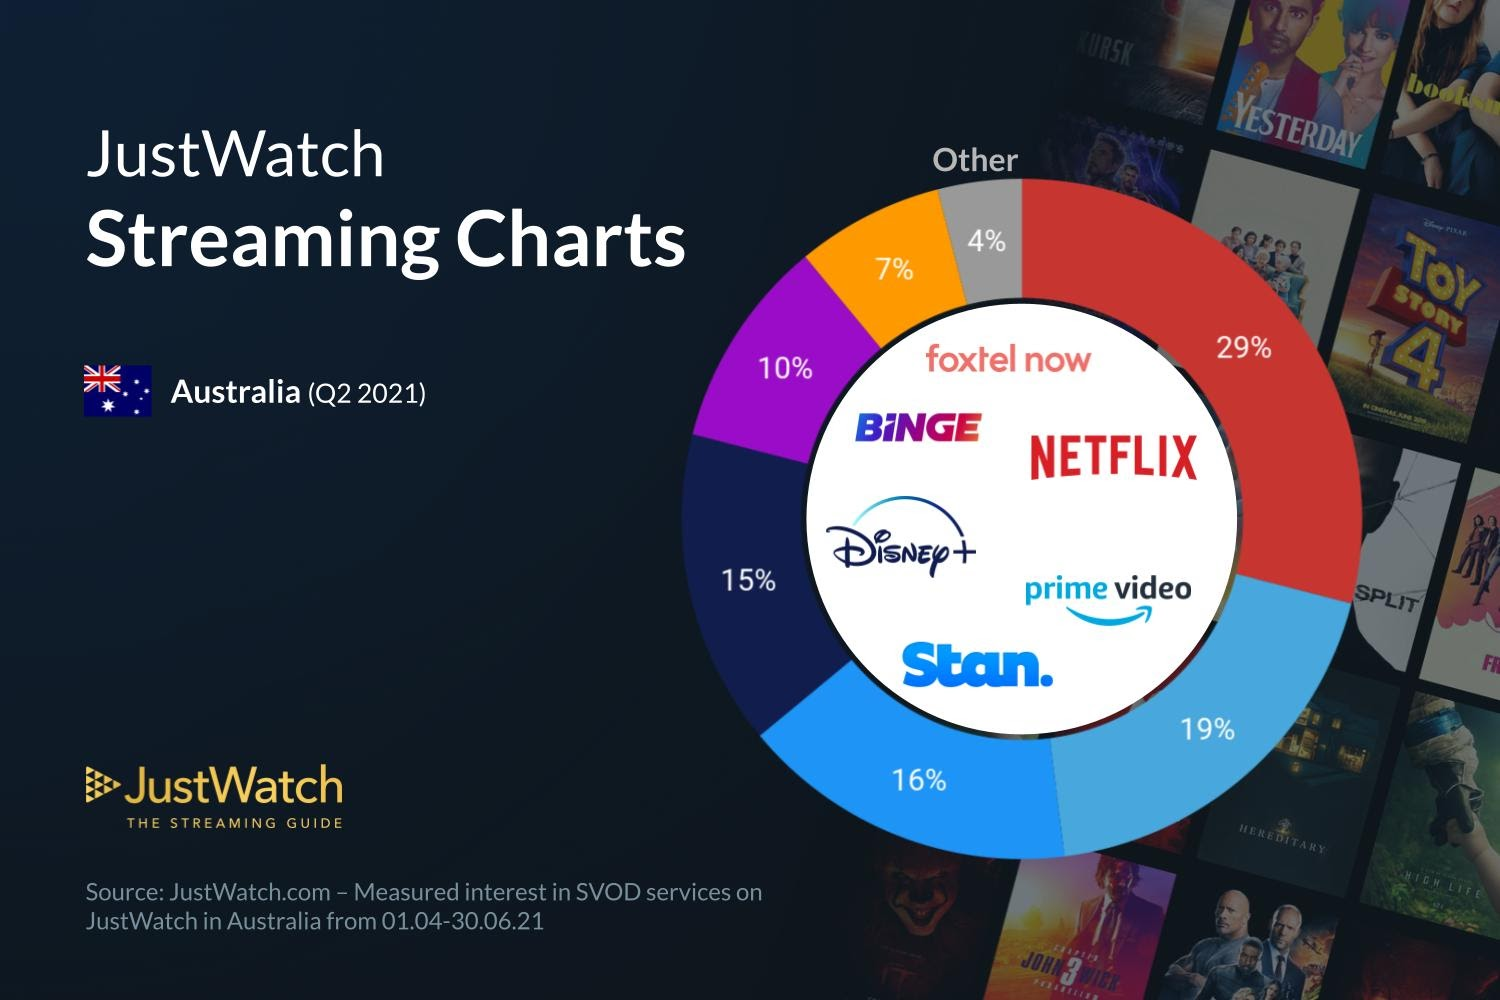 Graphics showing JustWatch: Q2 2021 Australian Streaming Market Share